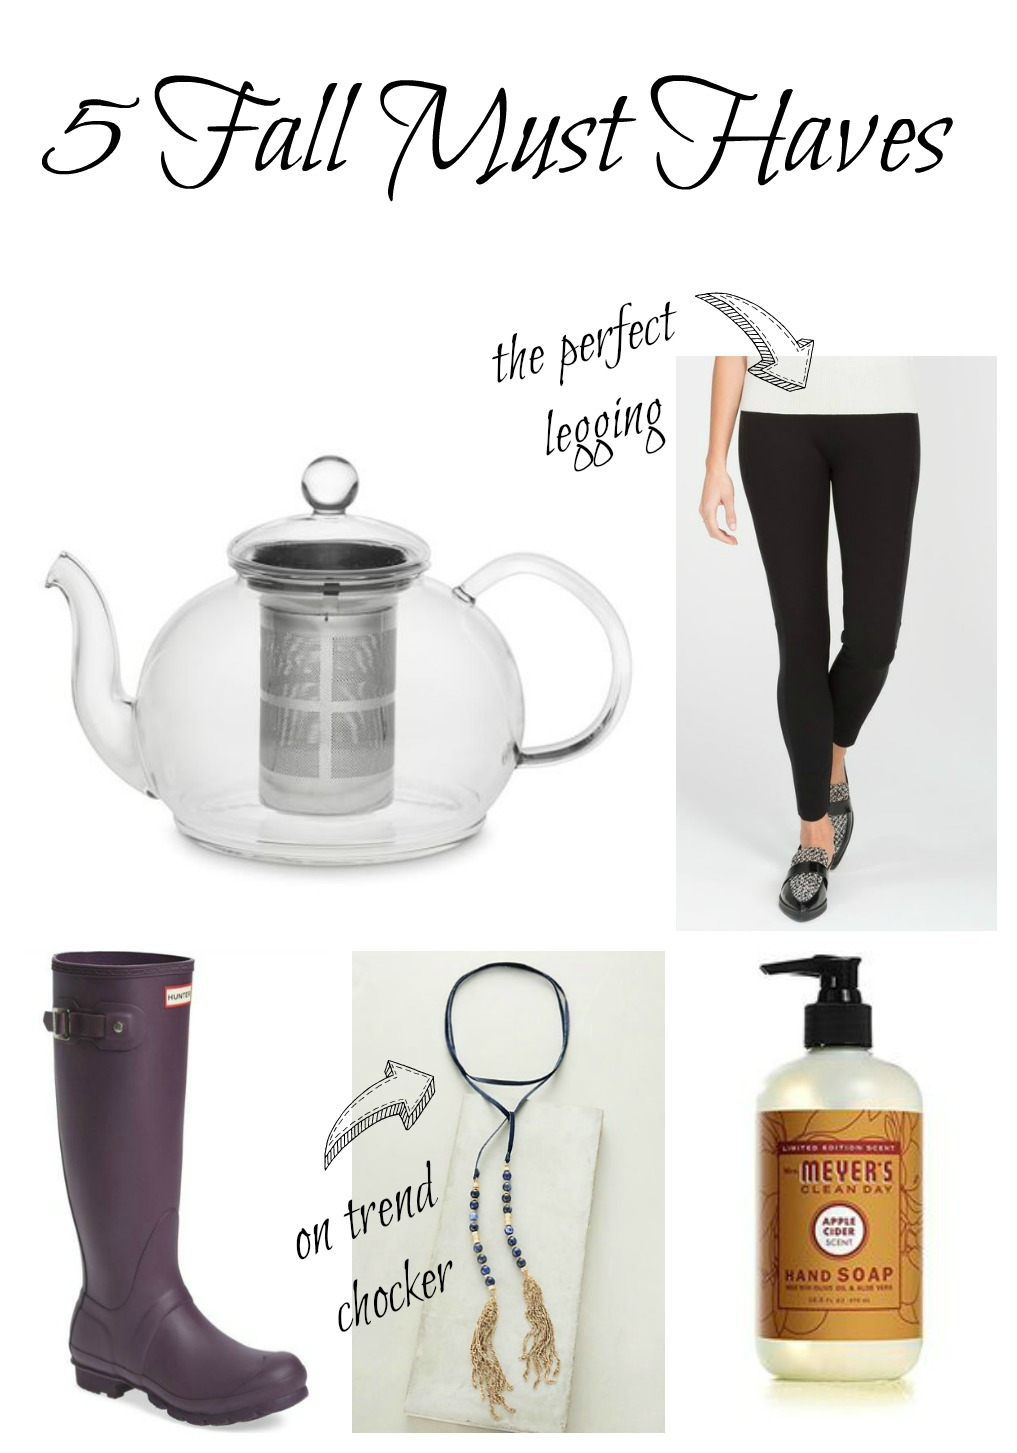 Five Fall Must Haves kellyelko.com